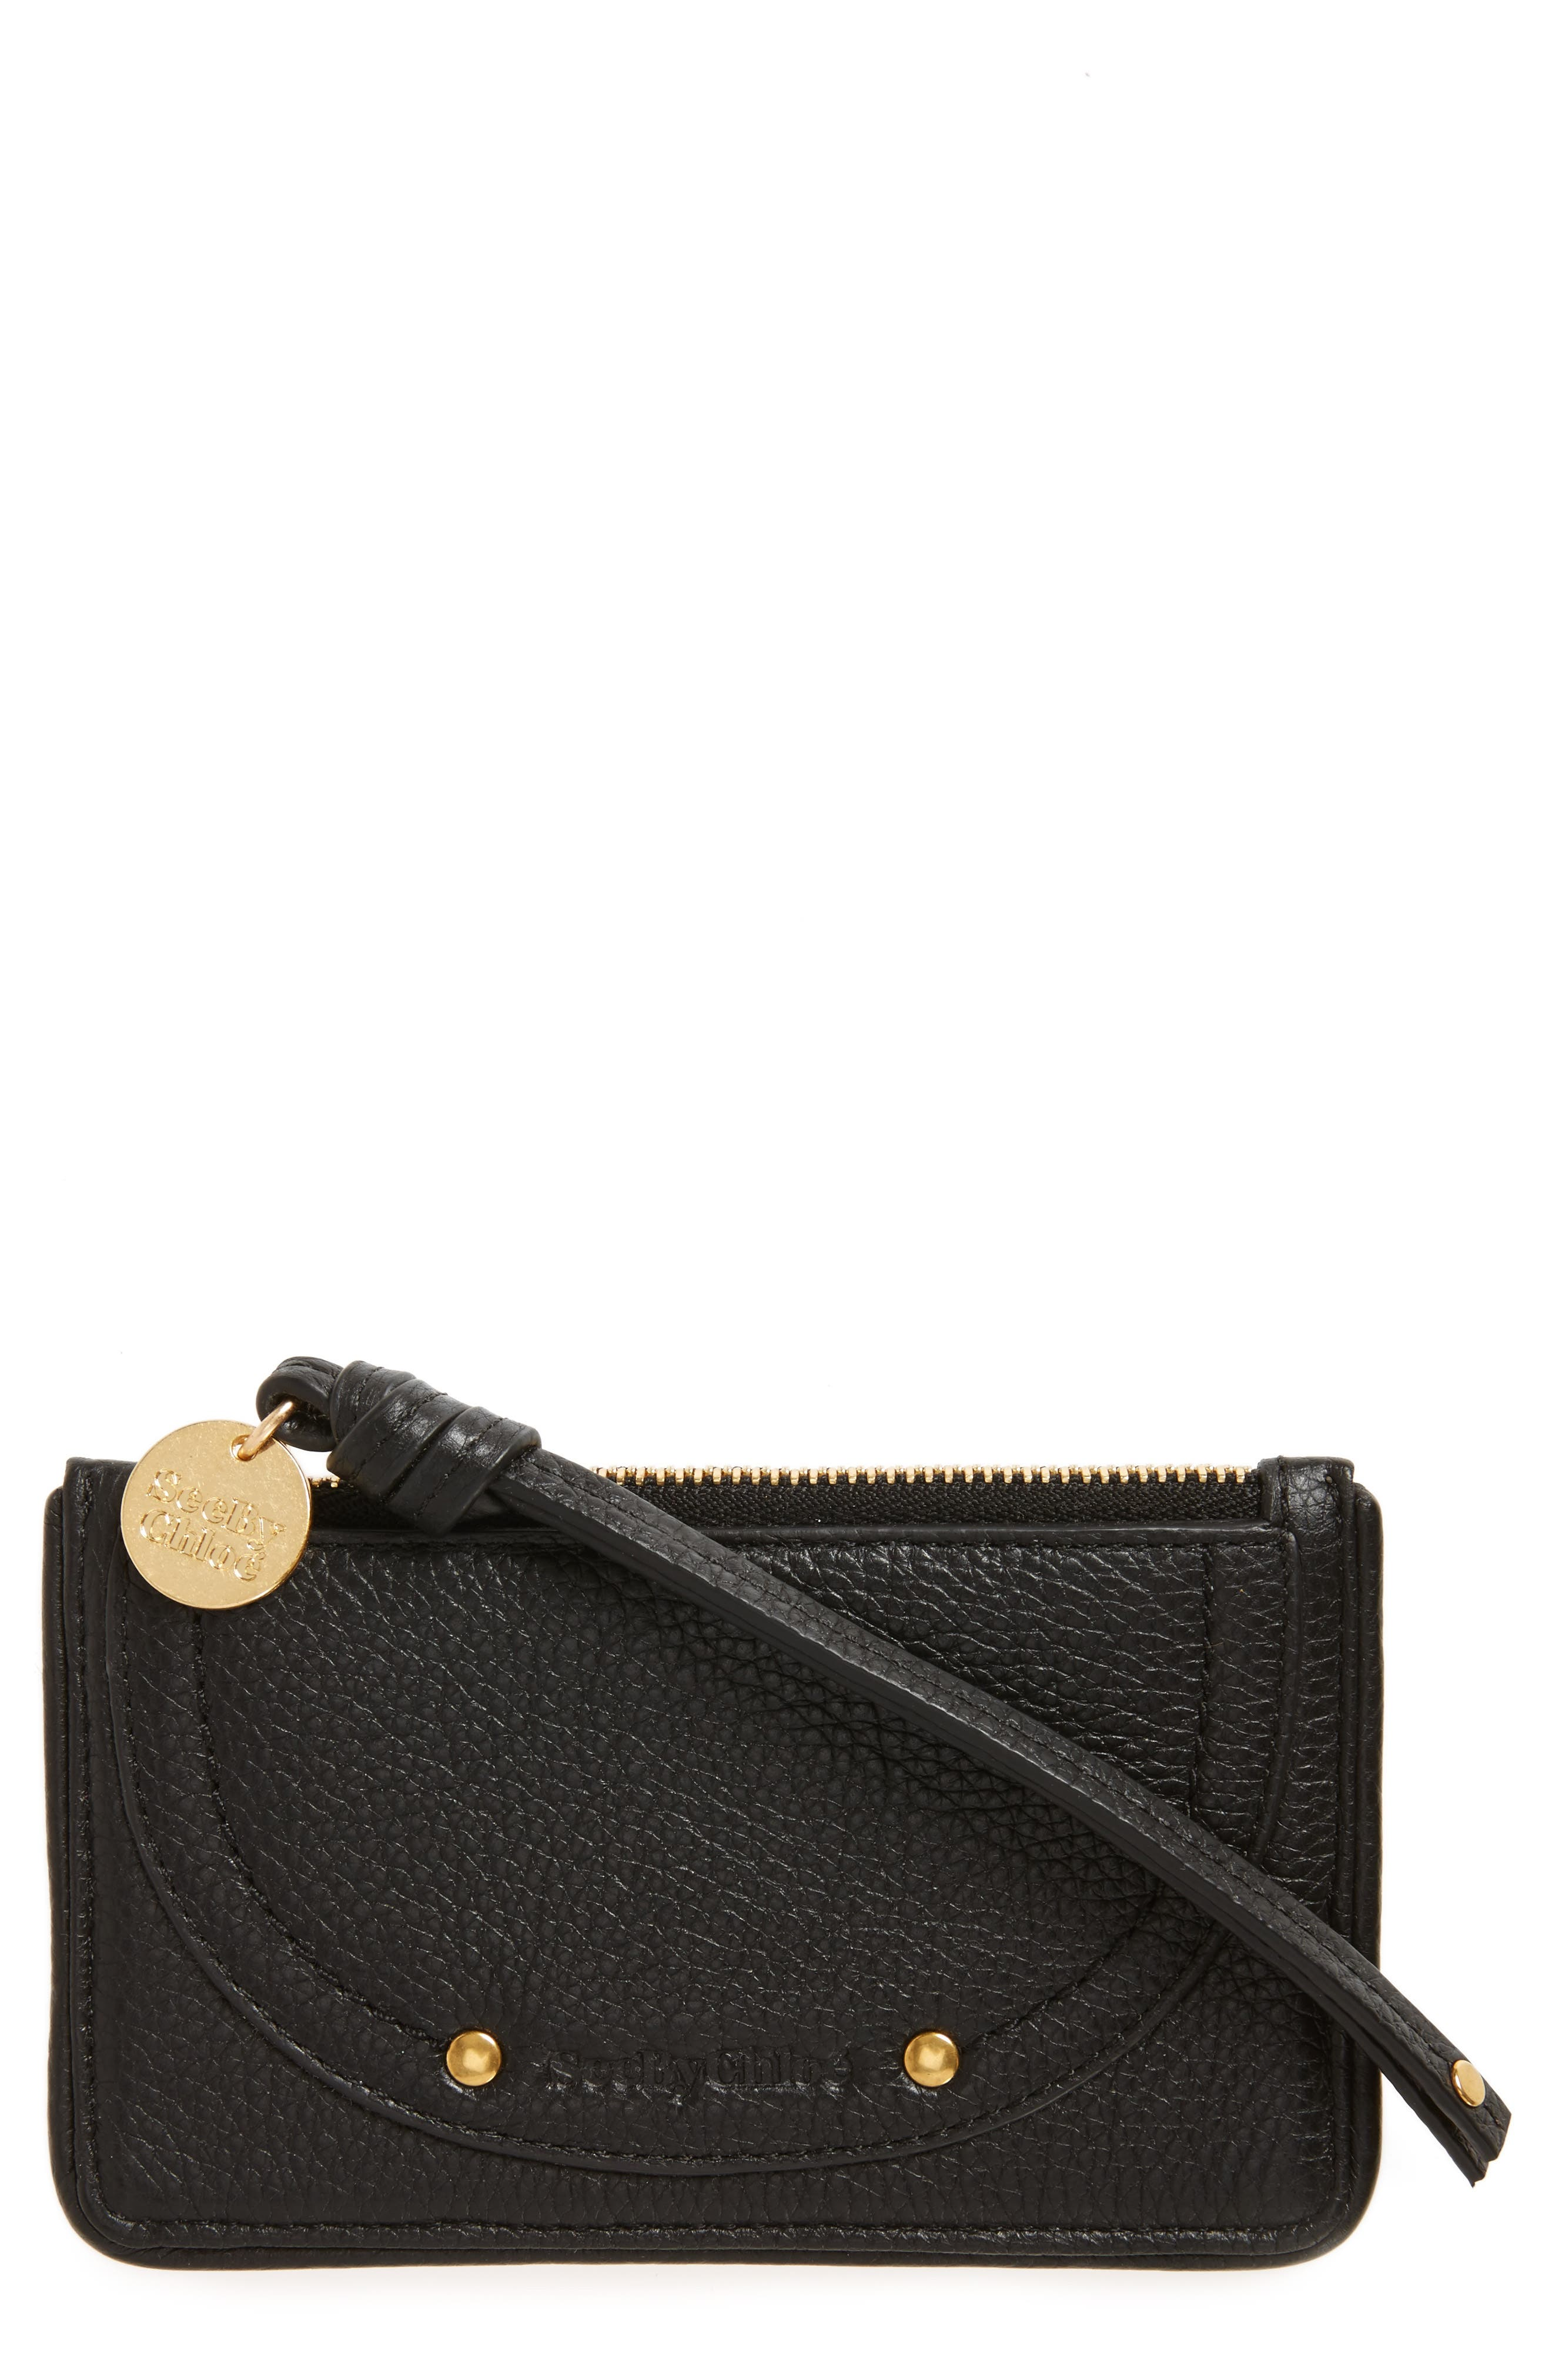 SEE BY CHLOÉ Leather Card Holder